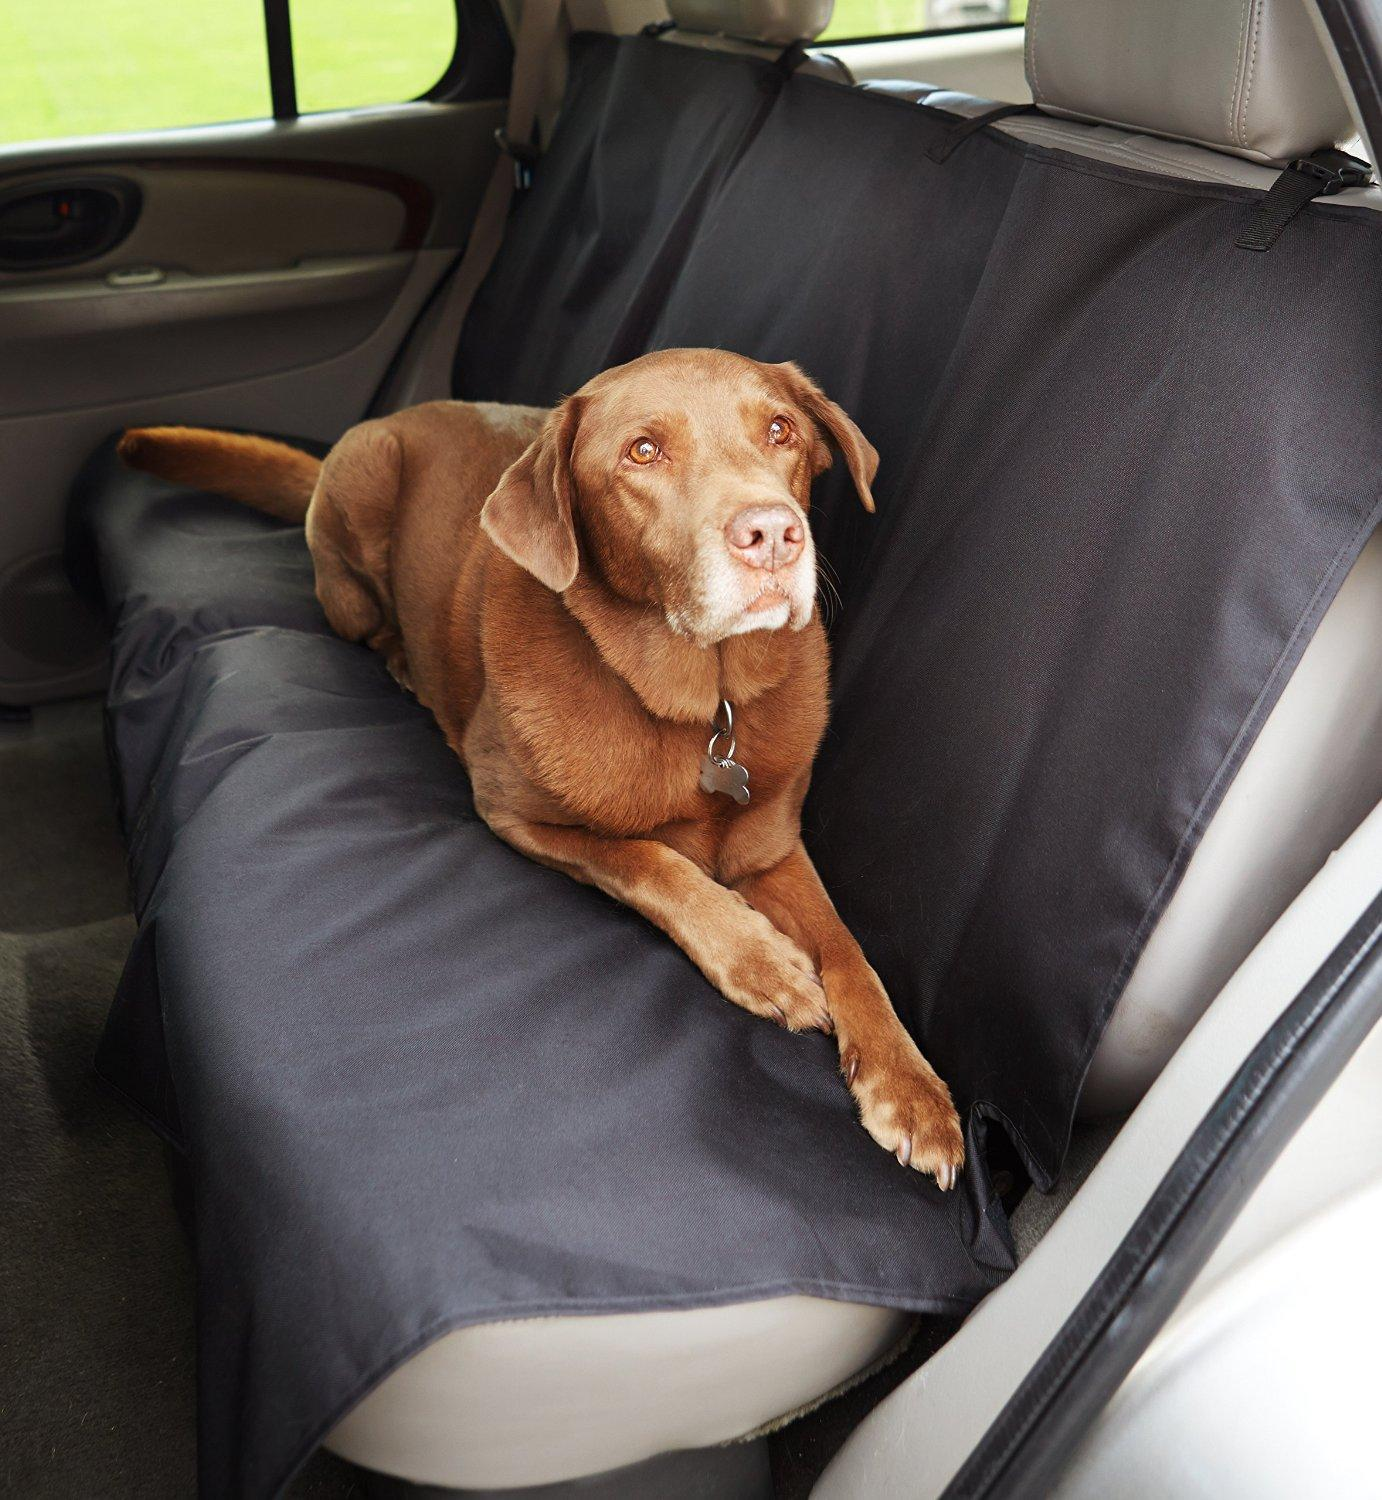 2018 Black Waterproof Car Bench Seat Cover For Pets From Skyepetsun